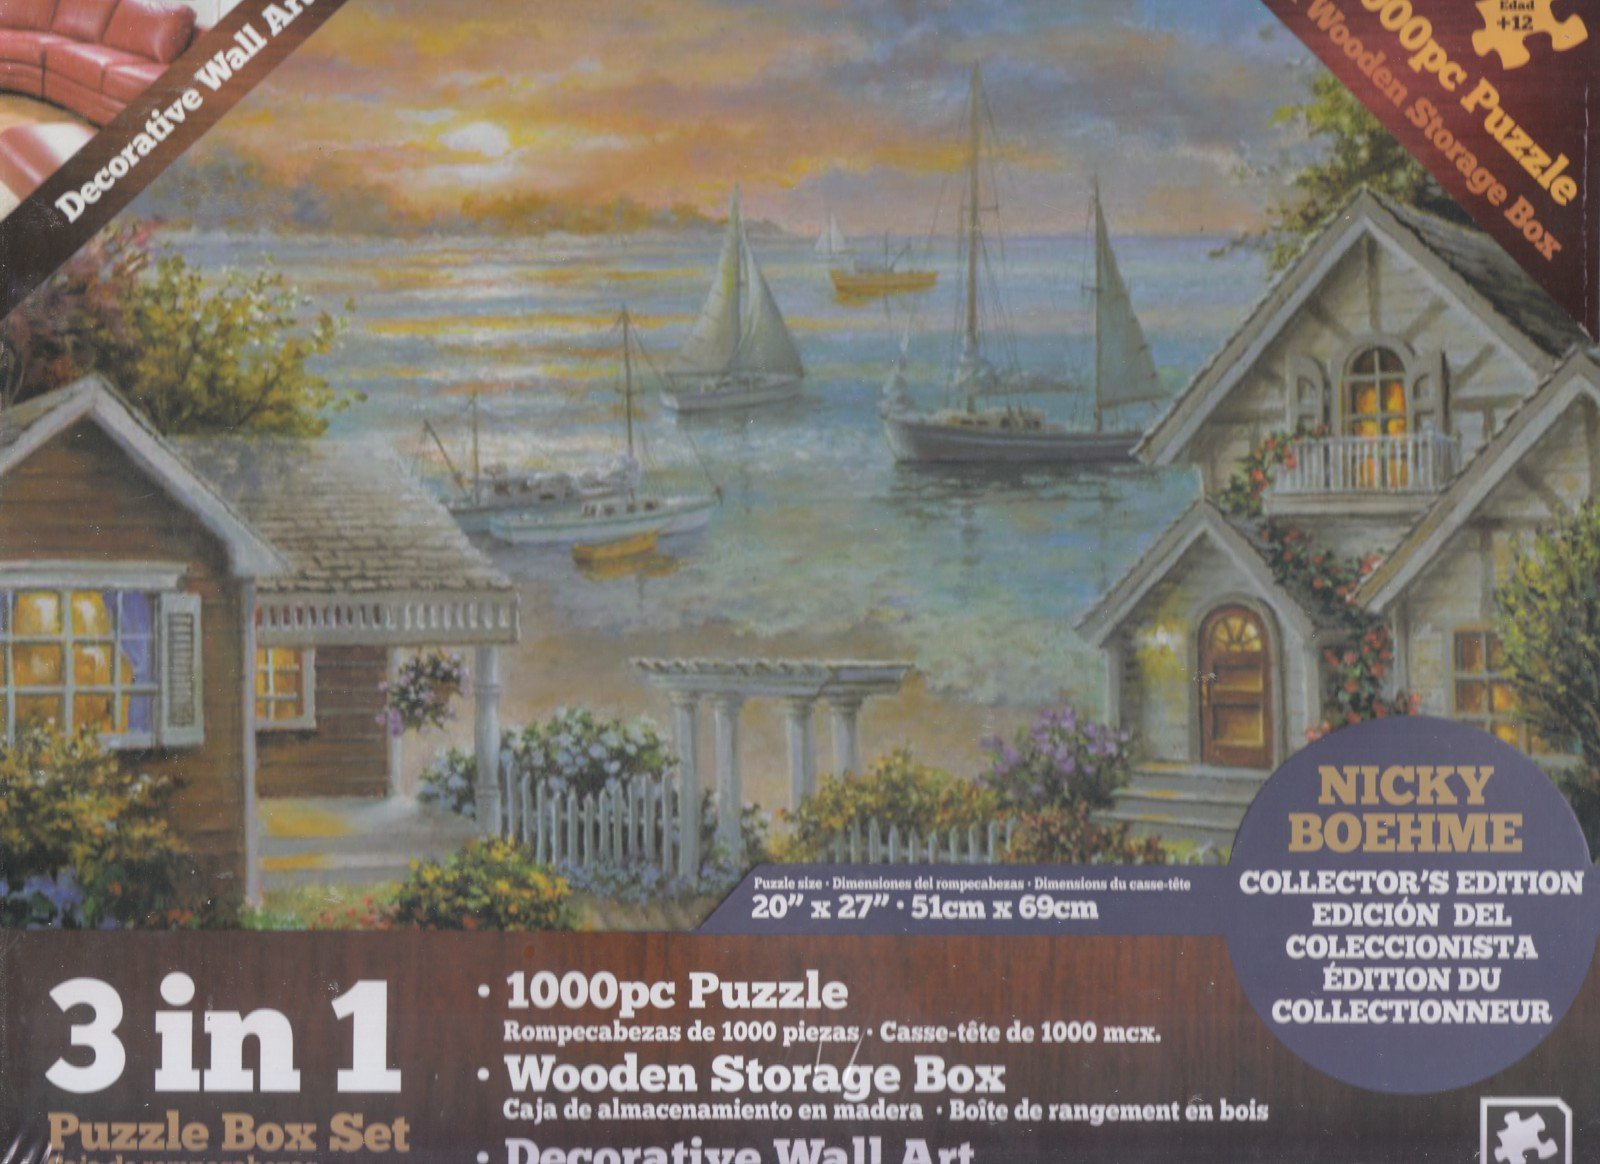 Newcastle Lobster Shed Maine Colorluxe 1000 pc Puzzle